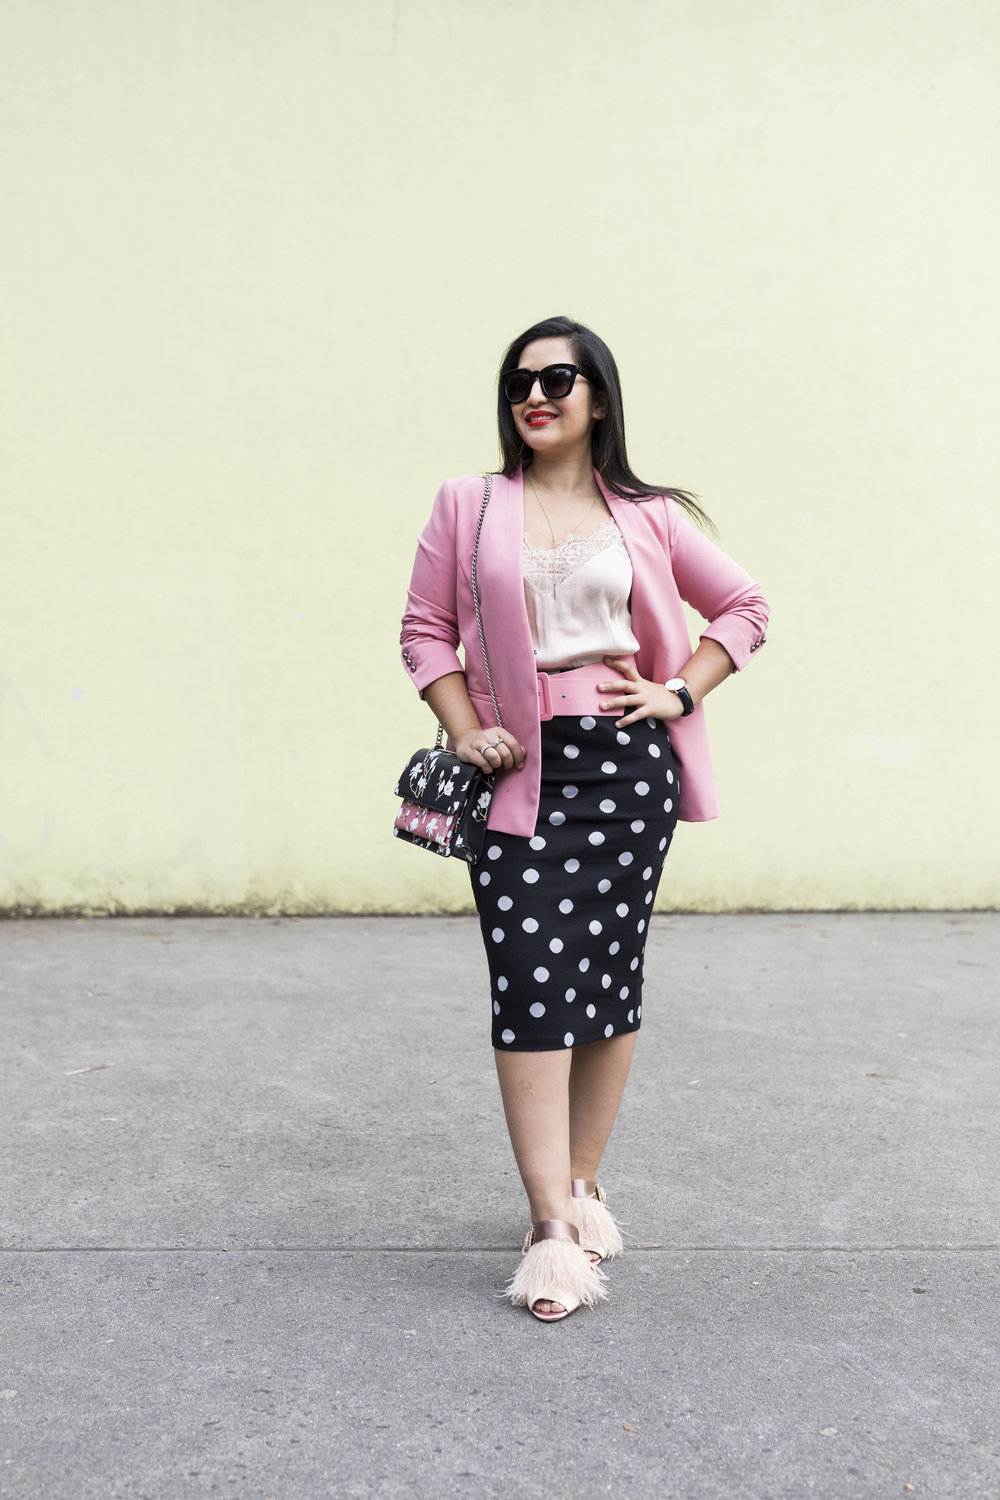 Krity S x Polka Dot and Pink Work Outfit1.jpg